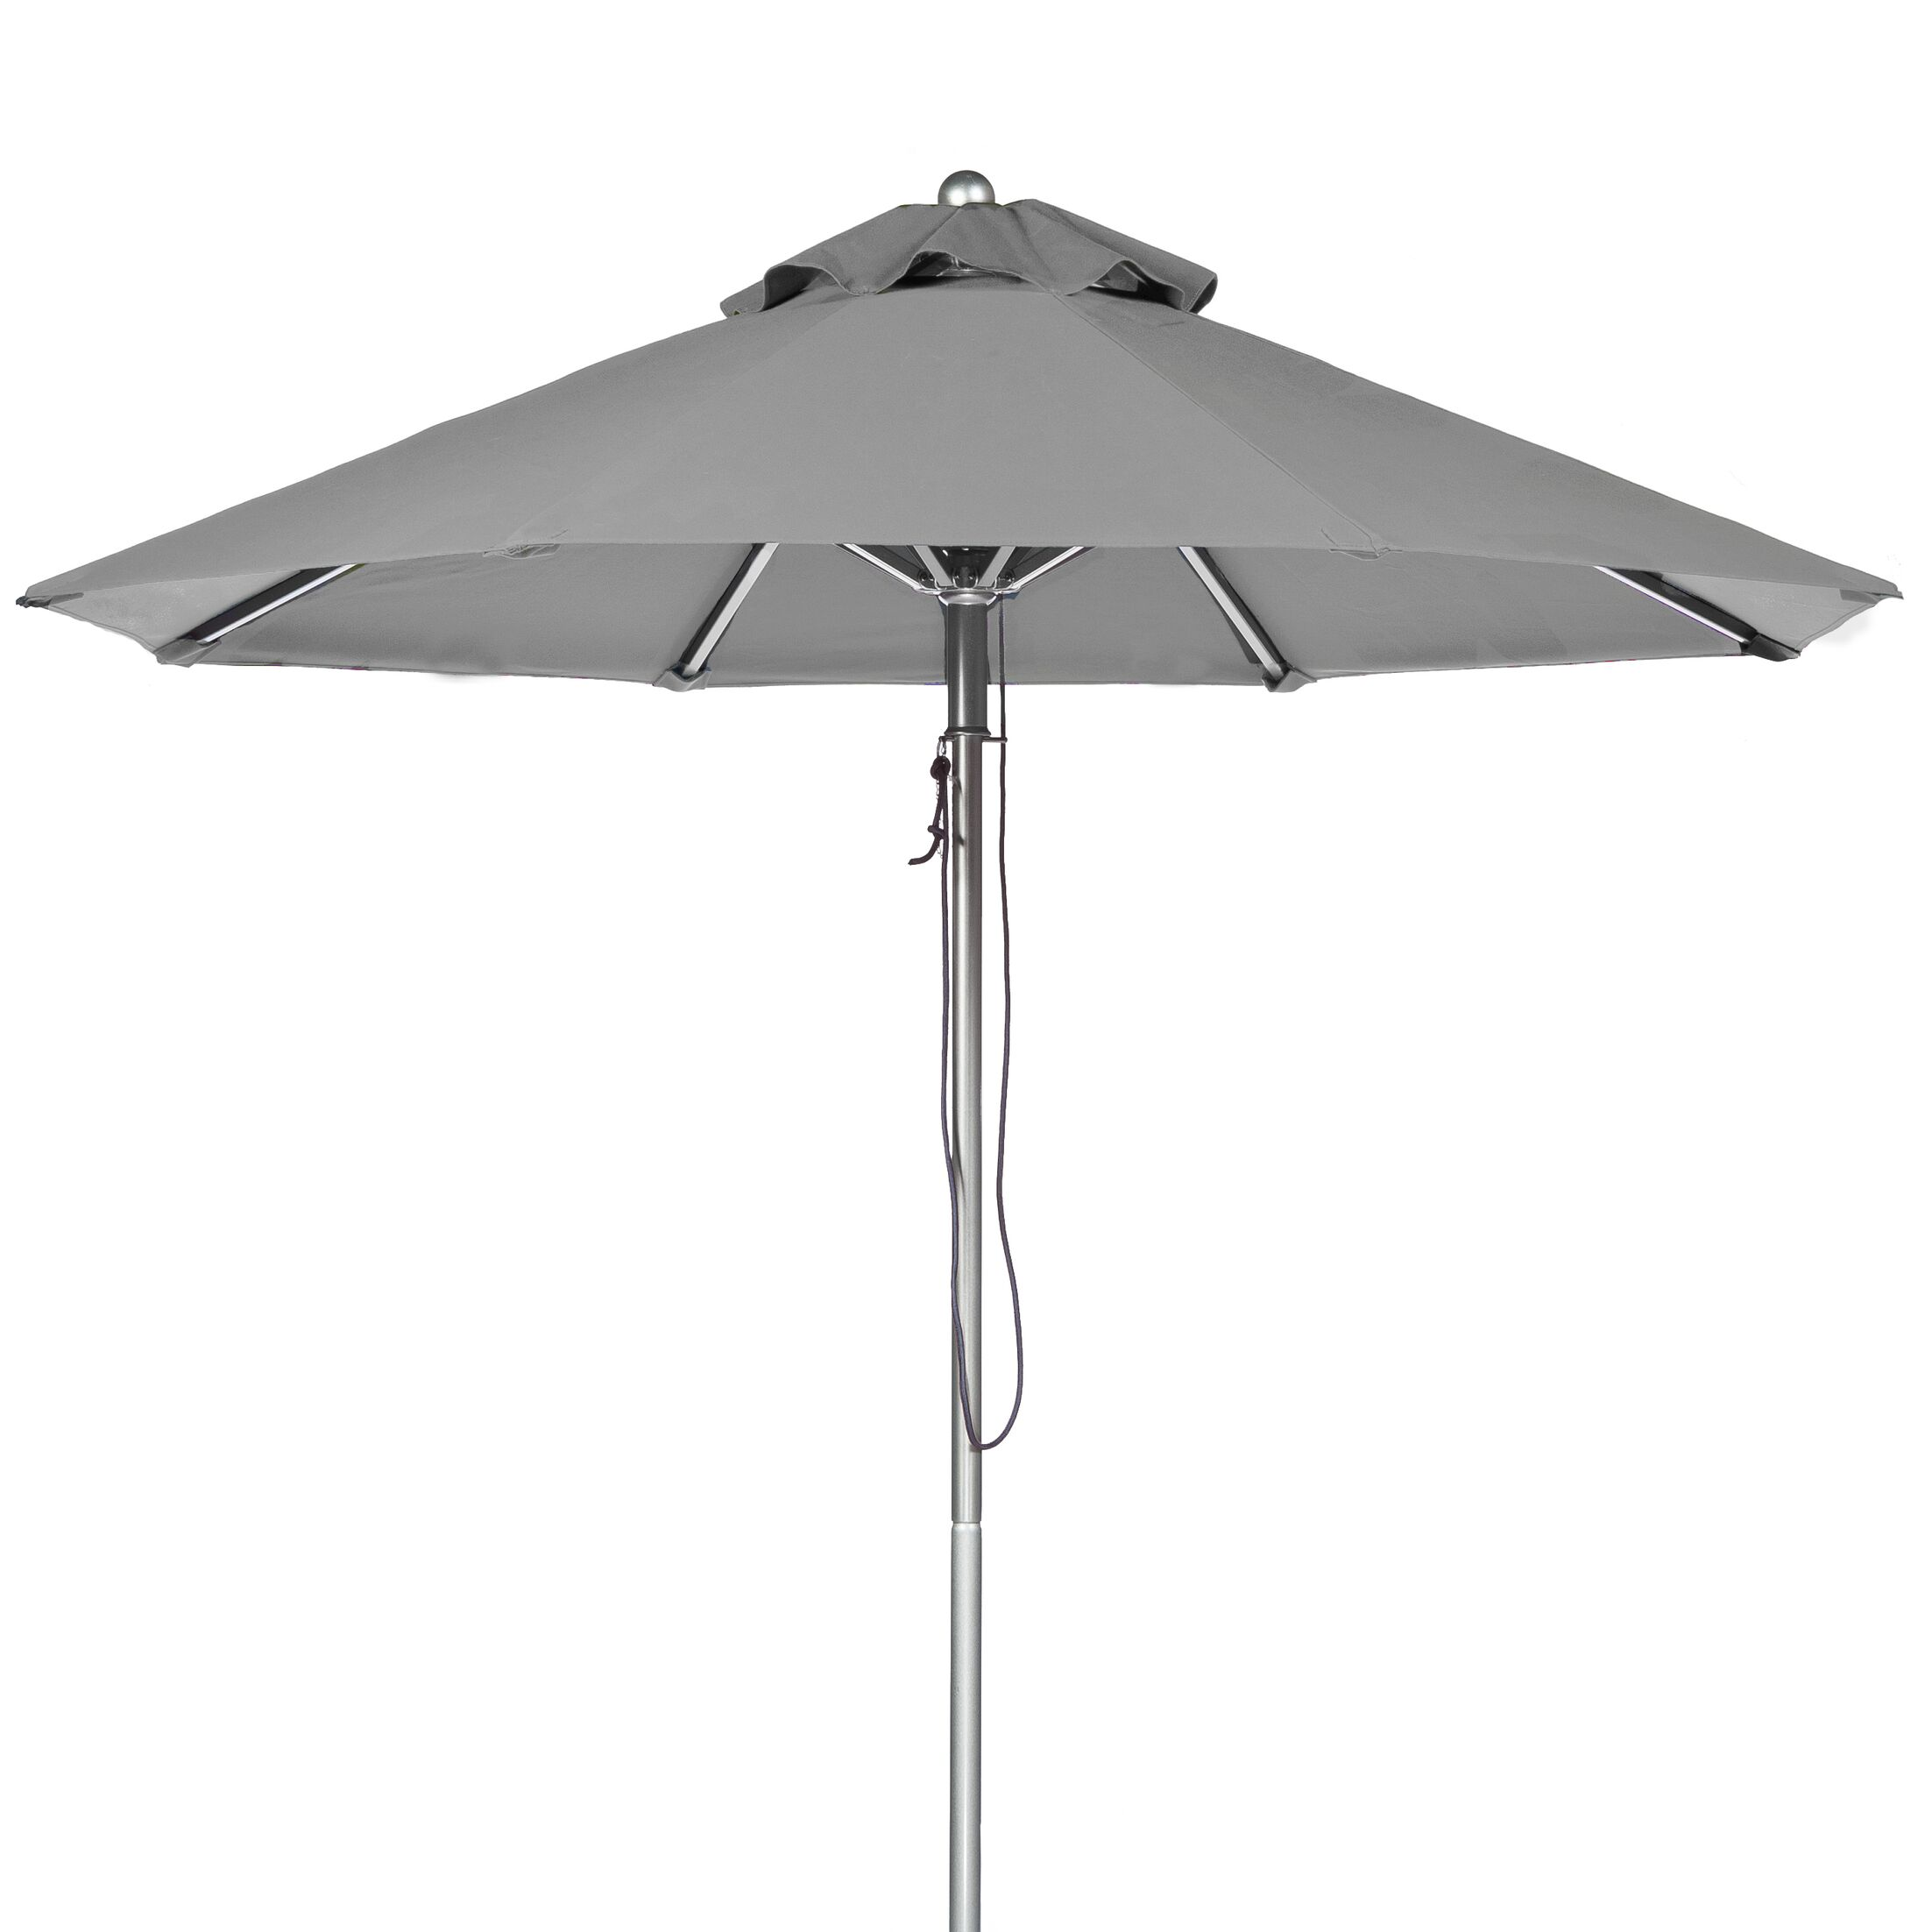 11' Market Umbrella Fabric: Cadet Gray